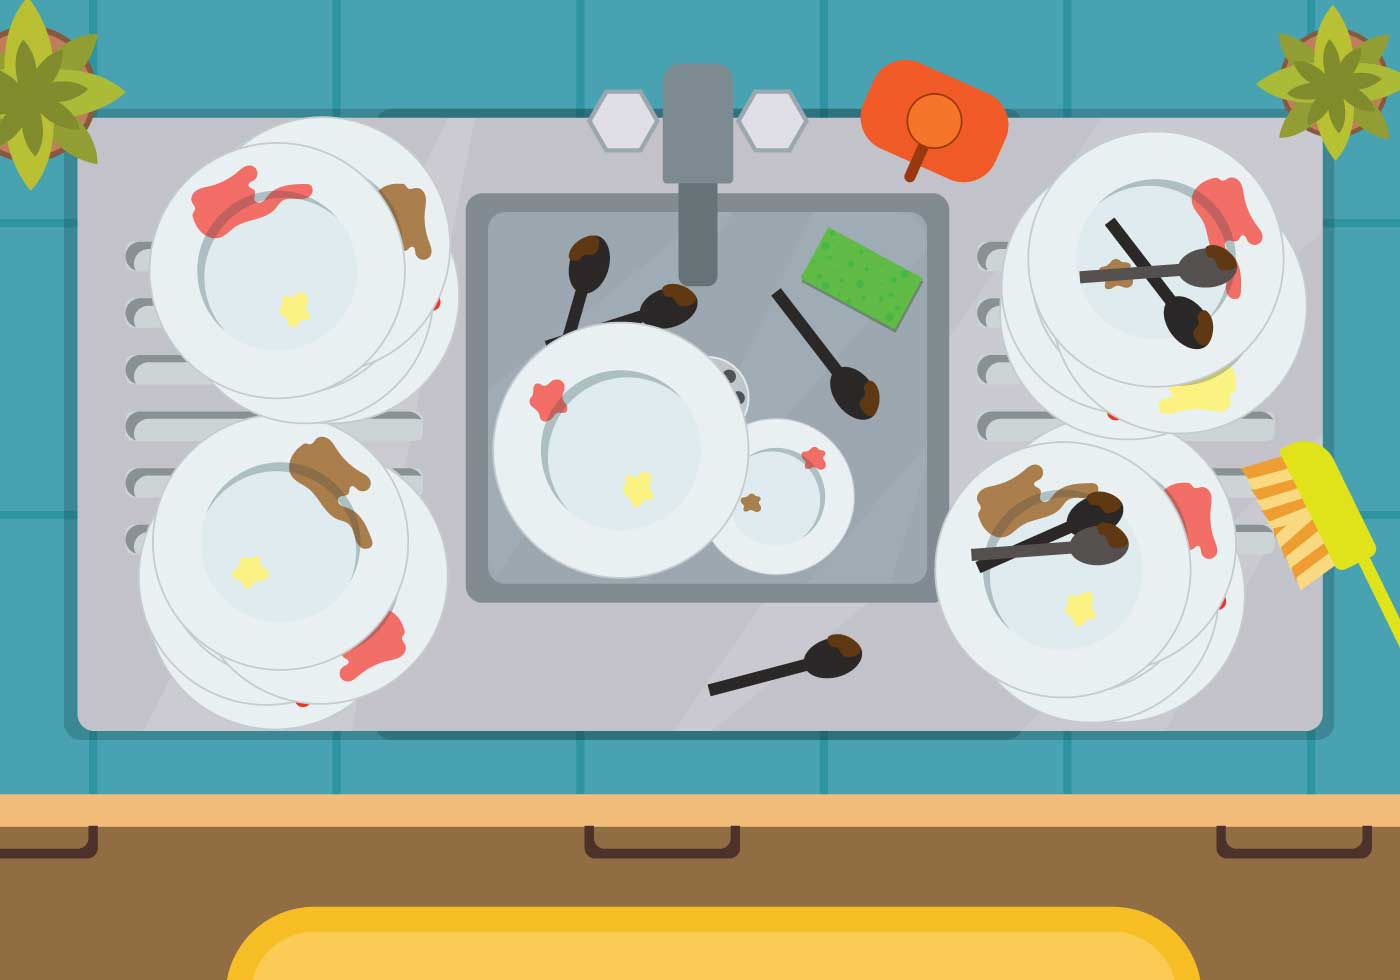 Dirty Dishes Illustration - Download Free Vector Art, Stock Graphics ...